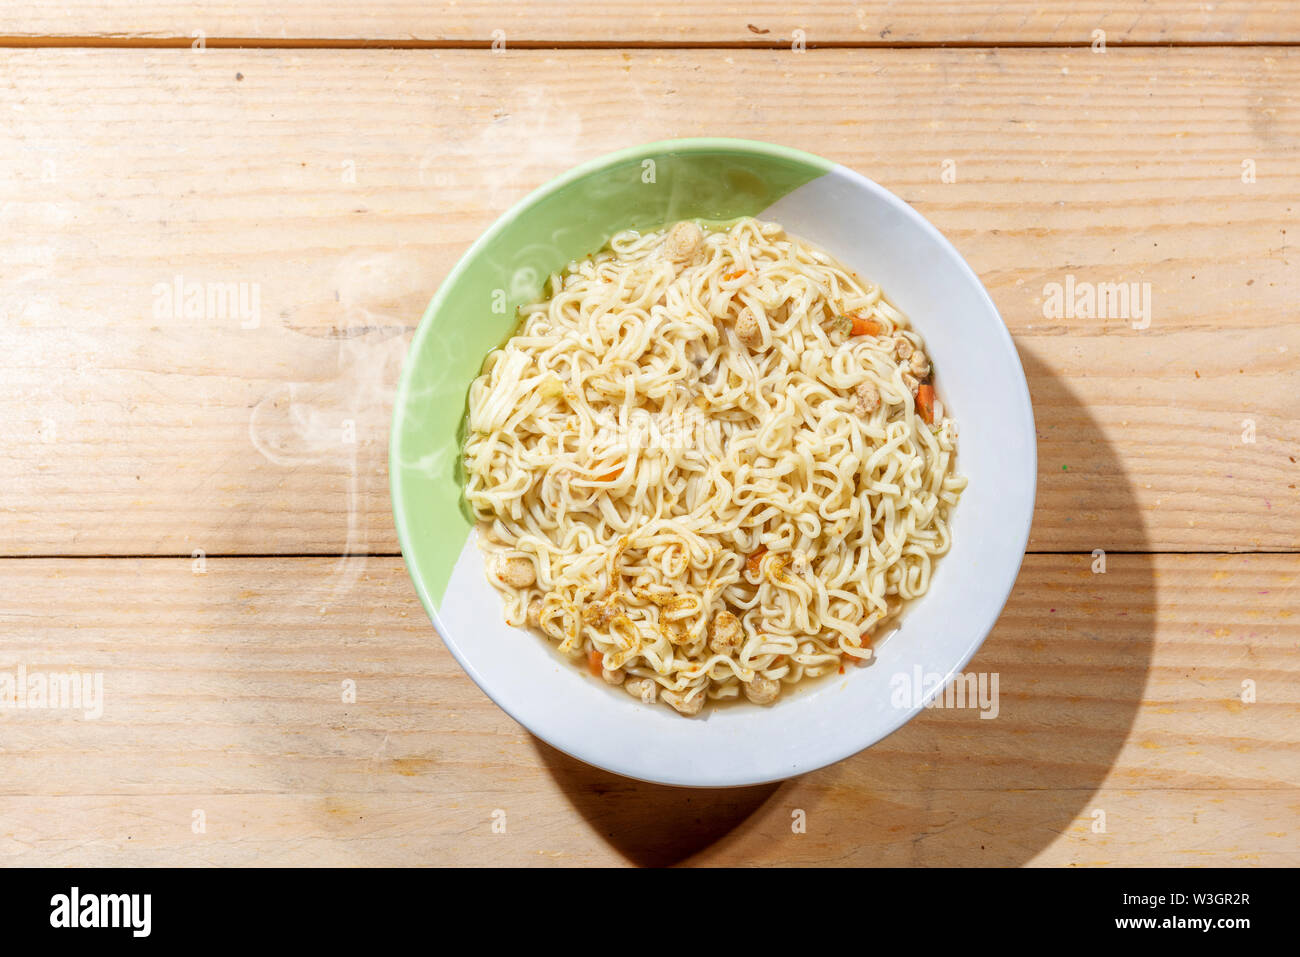 Noodles on the bowl on wooden table background - Stock Image